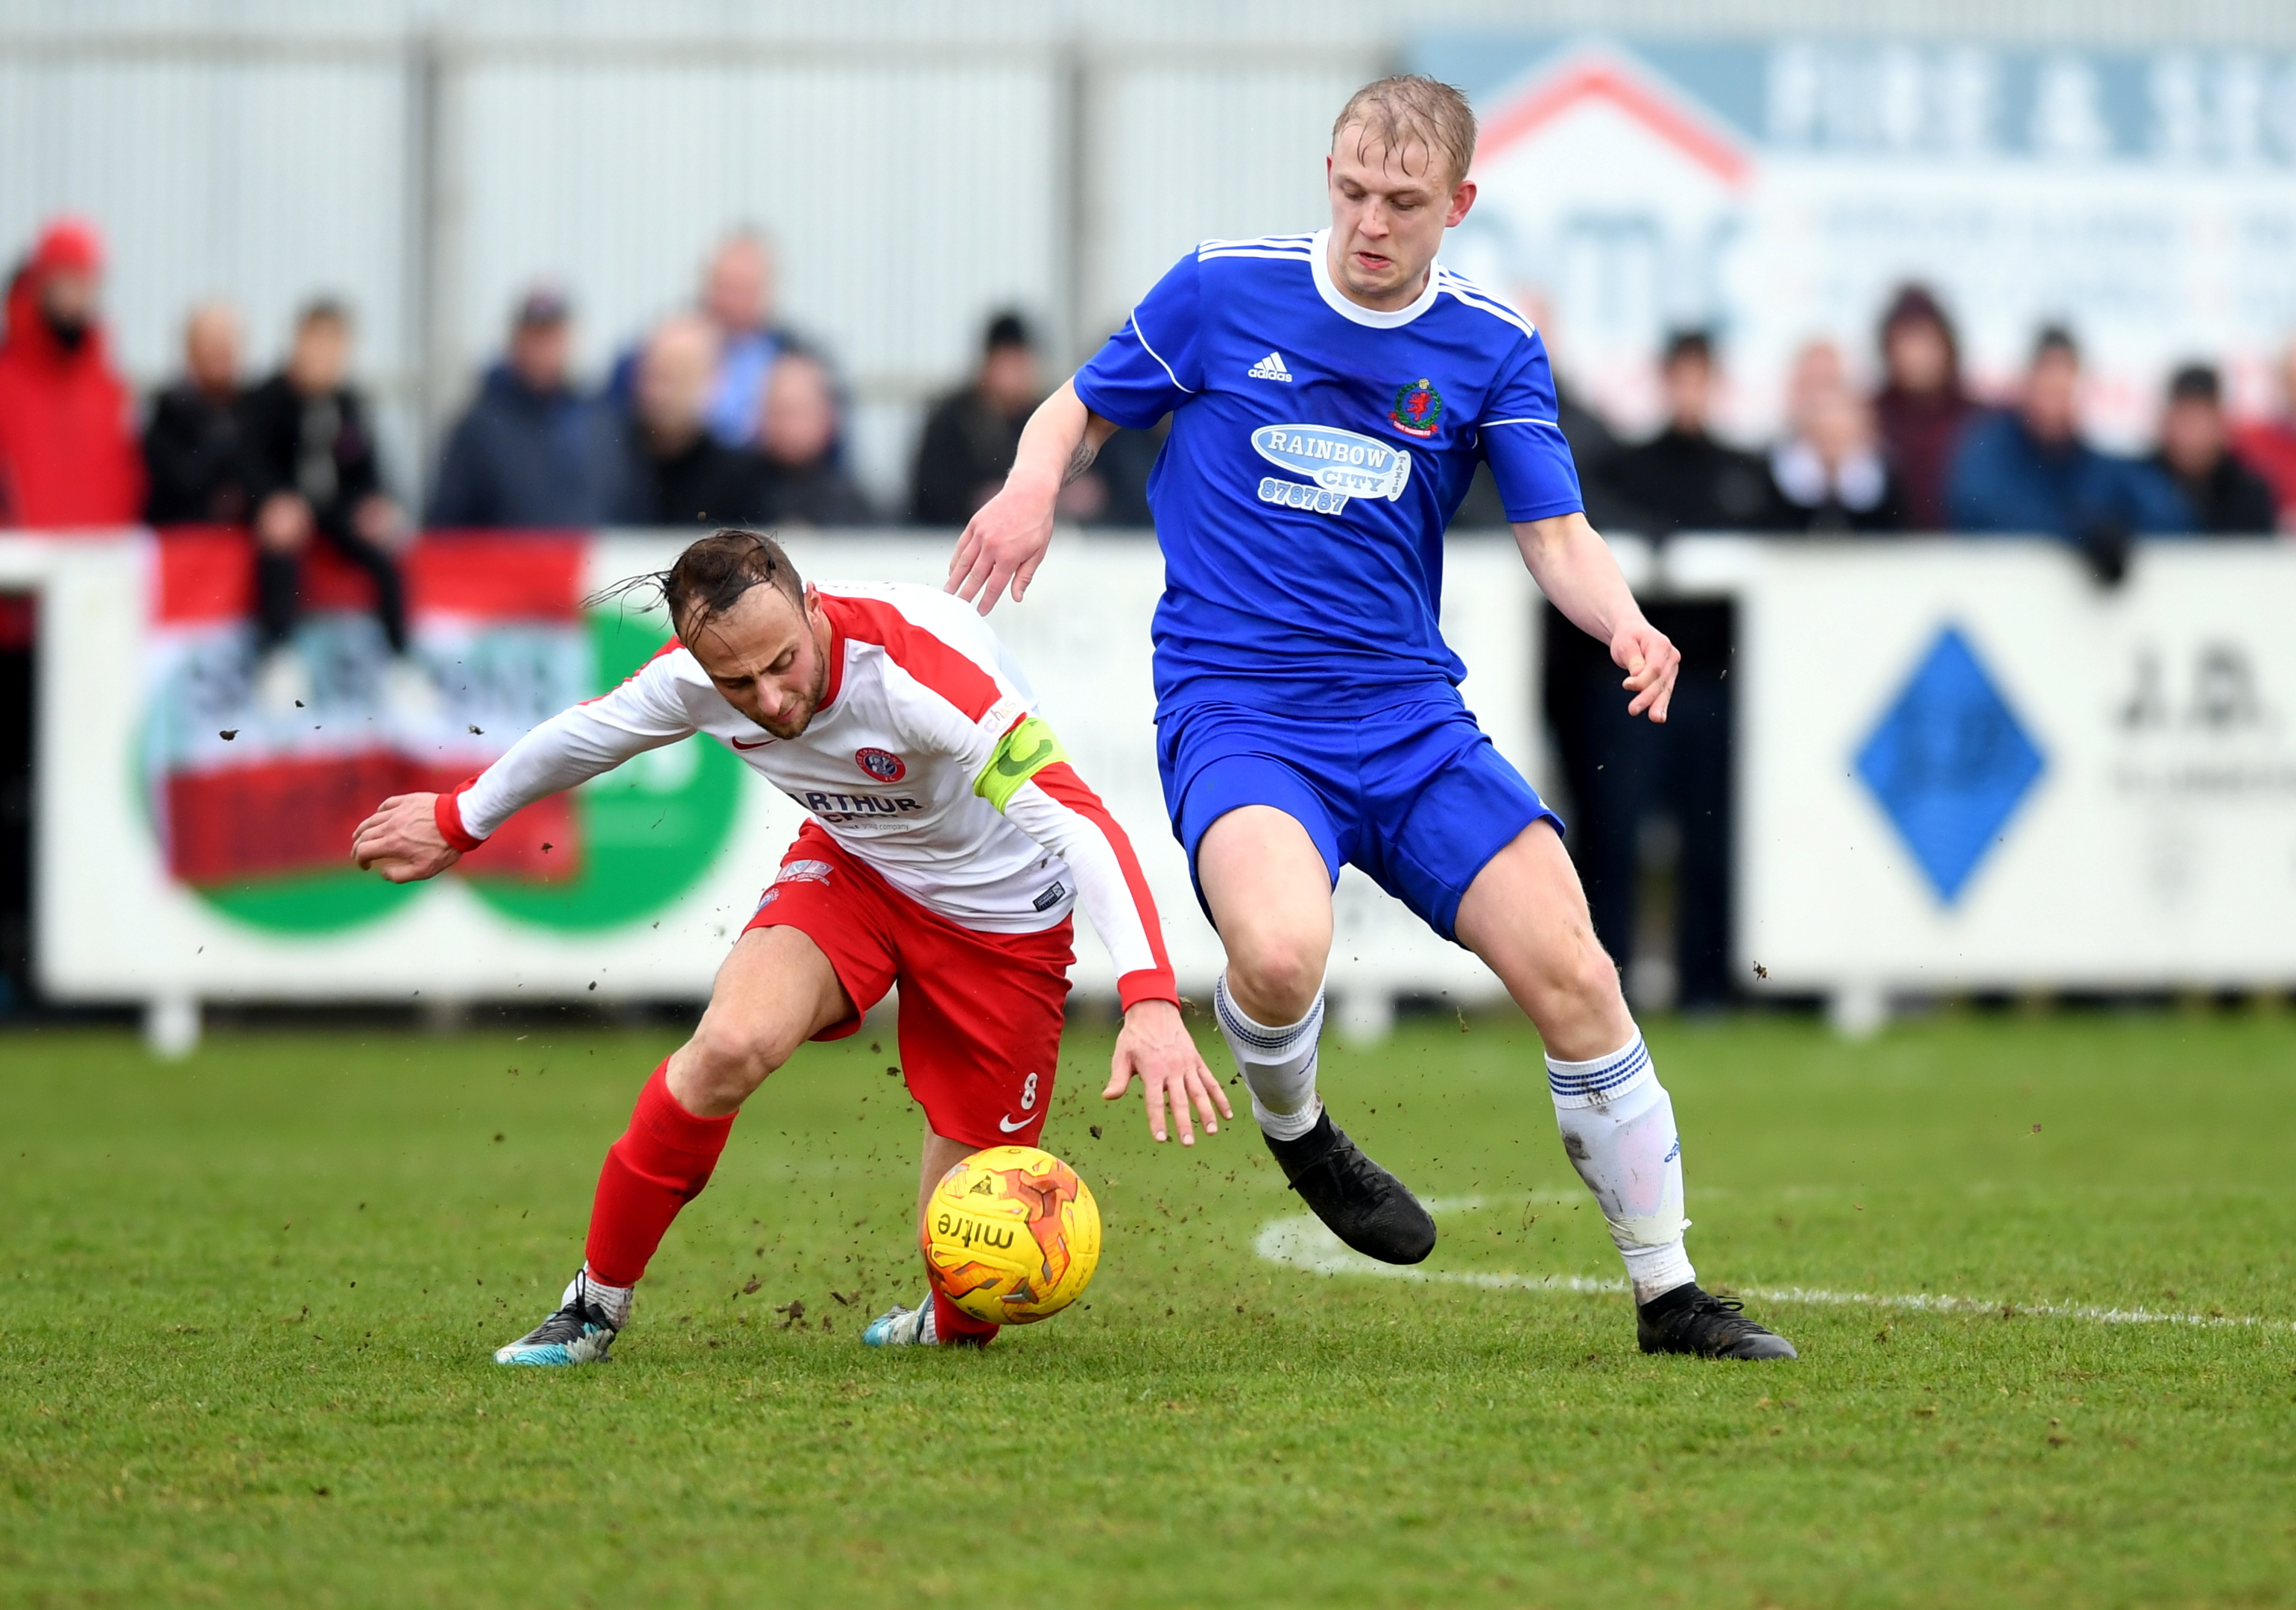 Cove Rangers defender Harry Milne wants his side to finish the job against Auchinleck on Saturday.